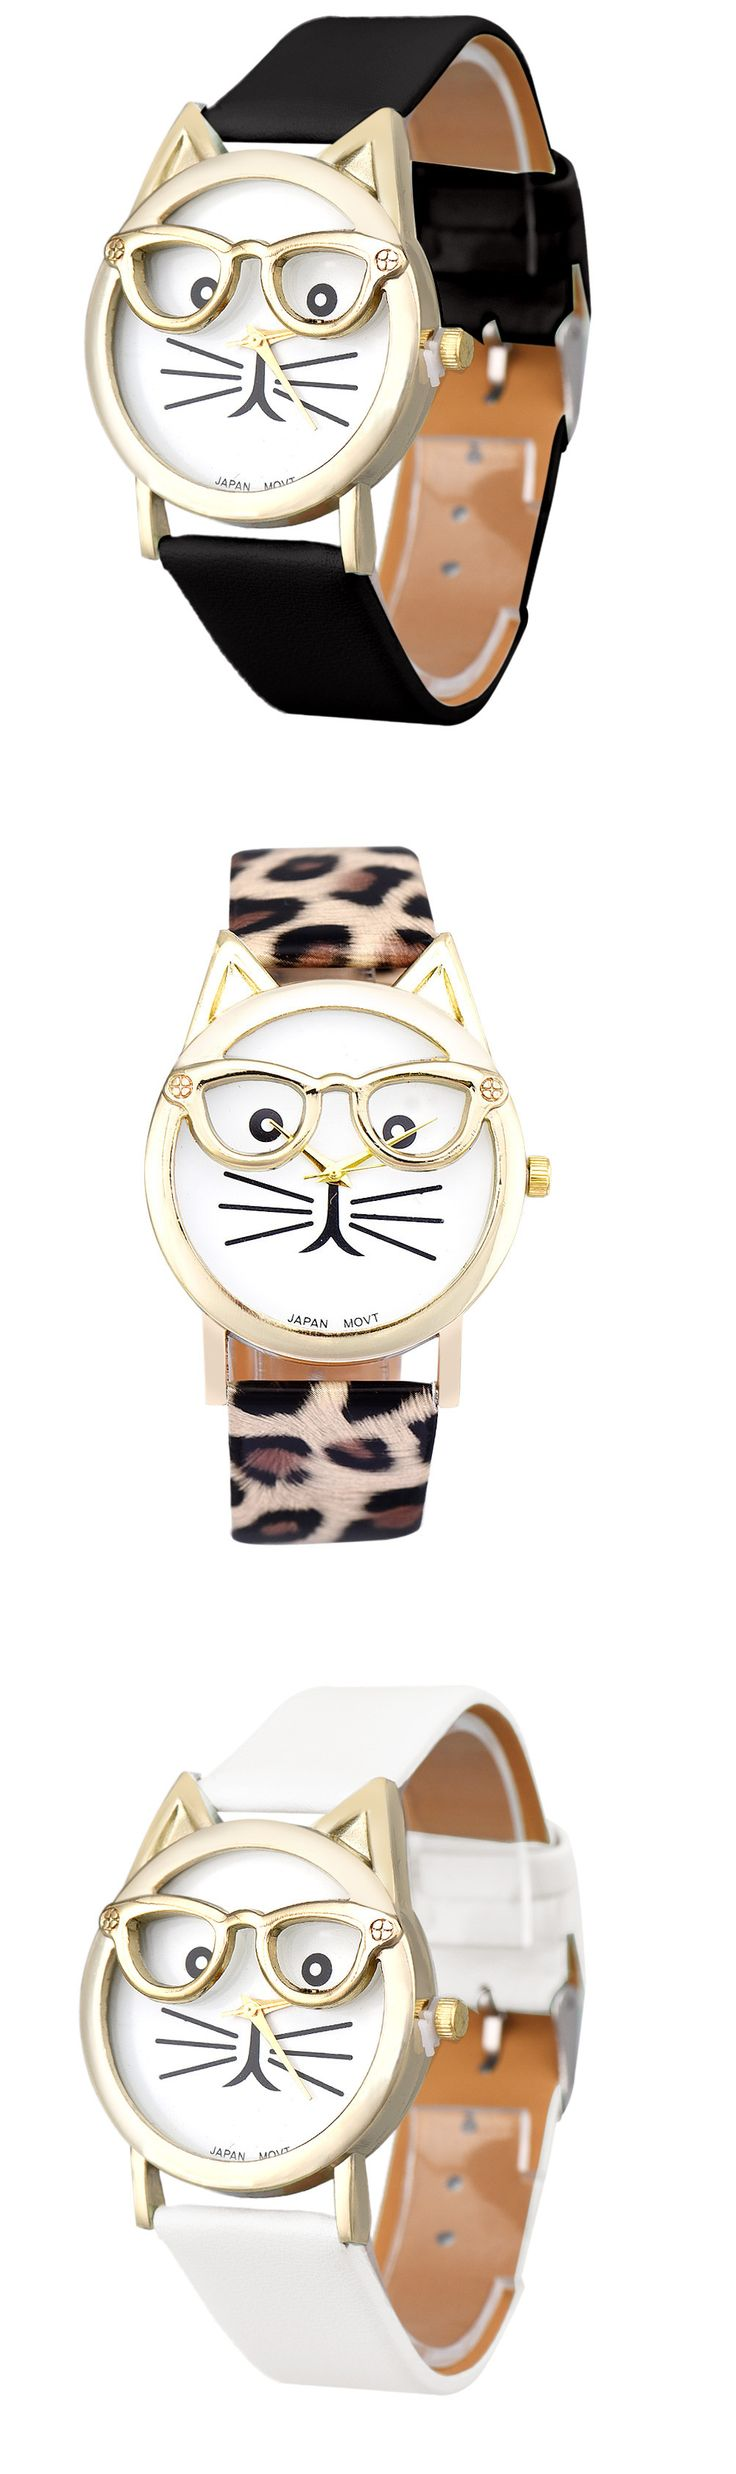 I don't know if I would use this as a watch, just a fashion statement!!!